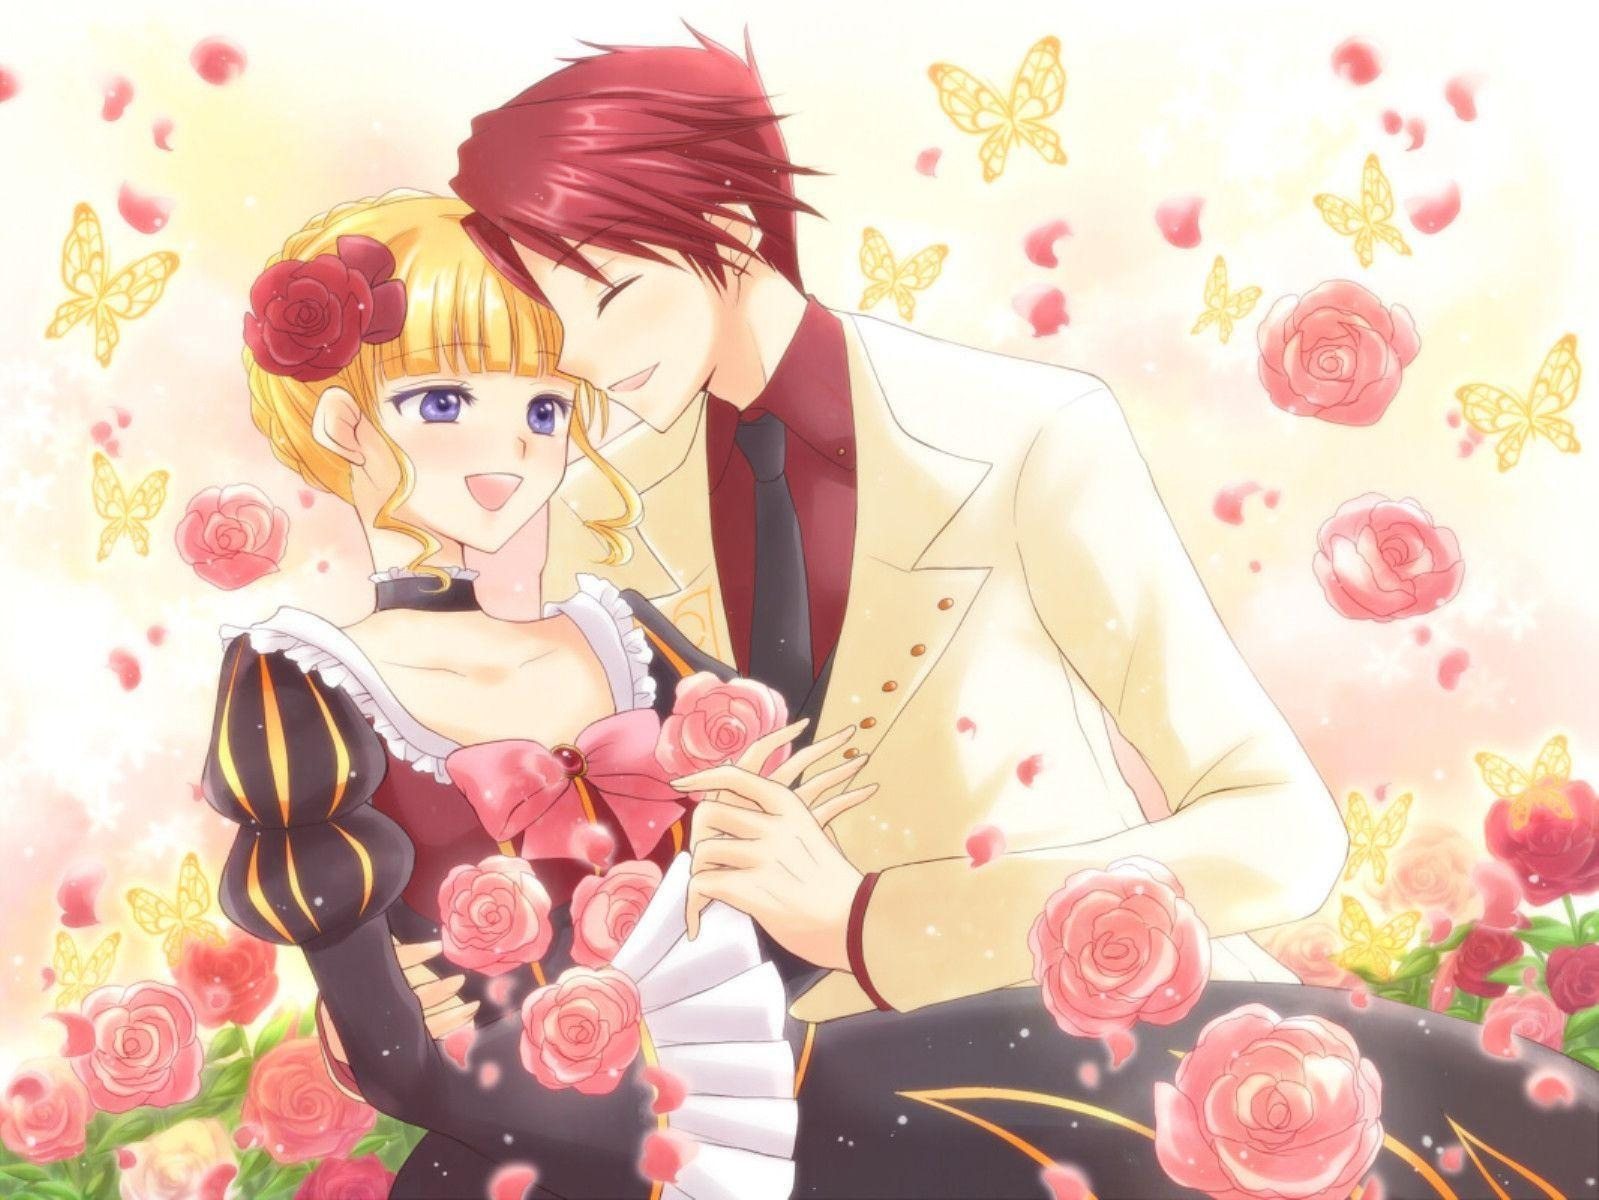 Esinalca Cute Anime Couples Wallpaper: Cute Anime Couple Wallpapers